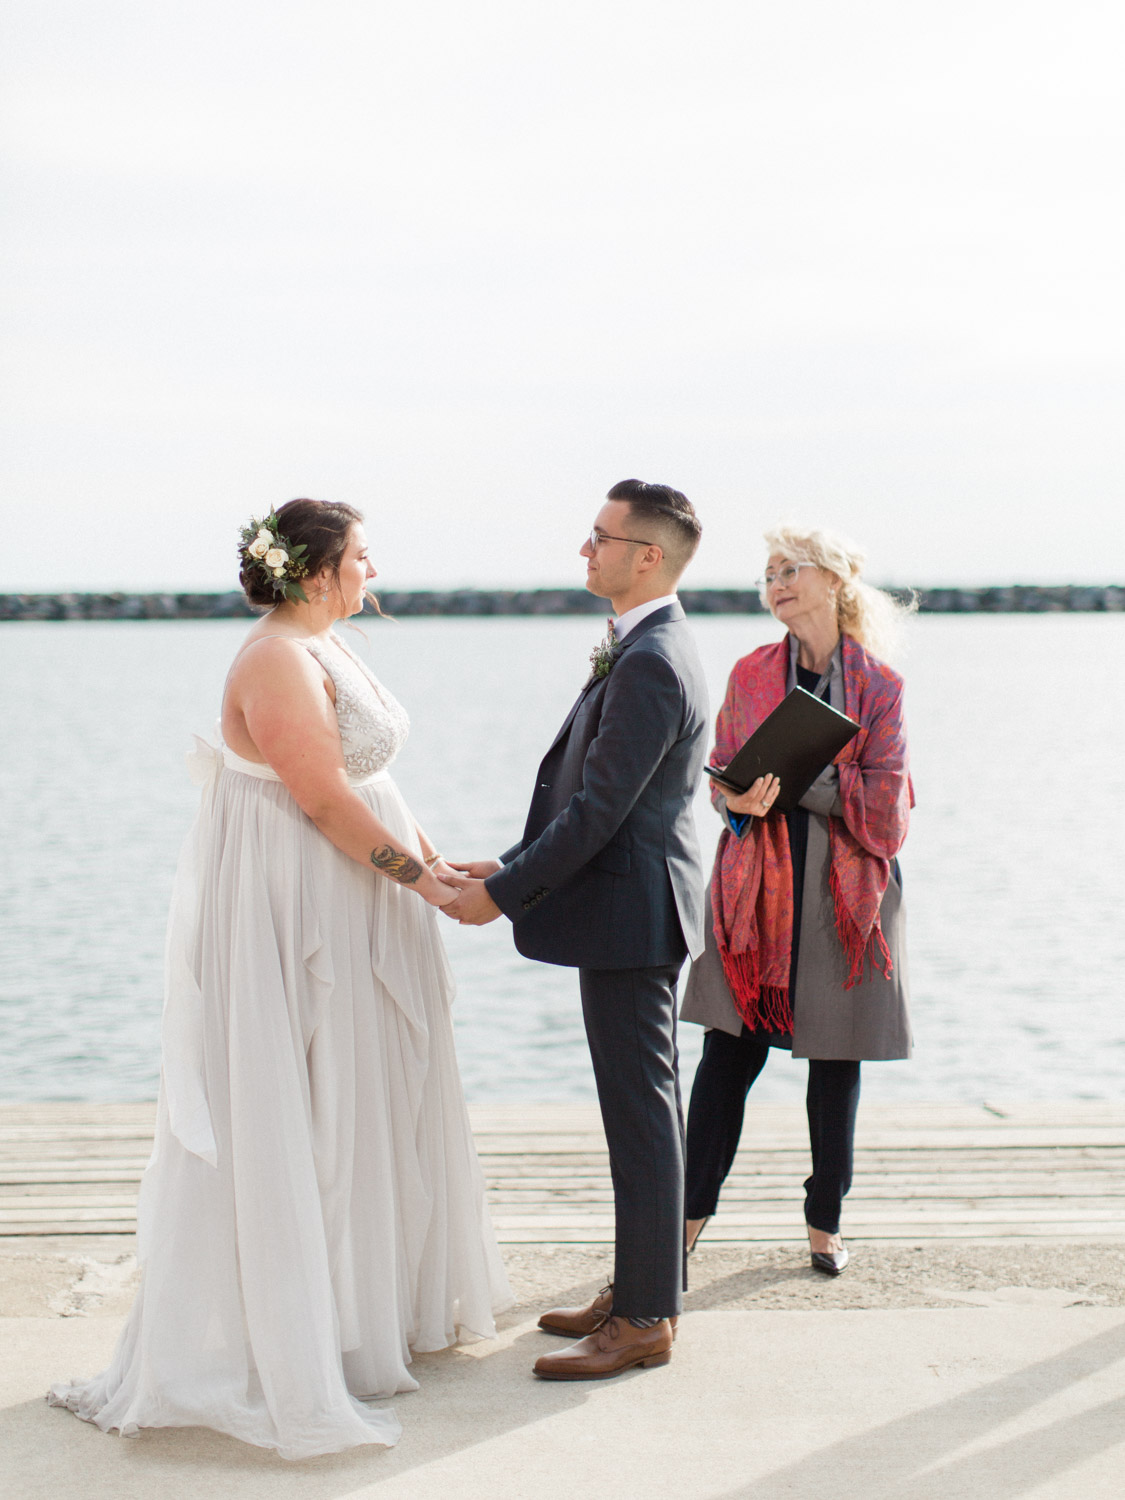 Toronto-wedding-photographer-alternative-downtown-waterfront-wedding-the-argonauts-rowing-club62.jpg